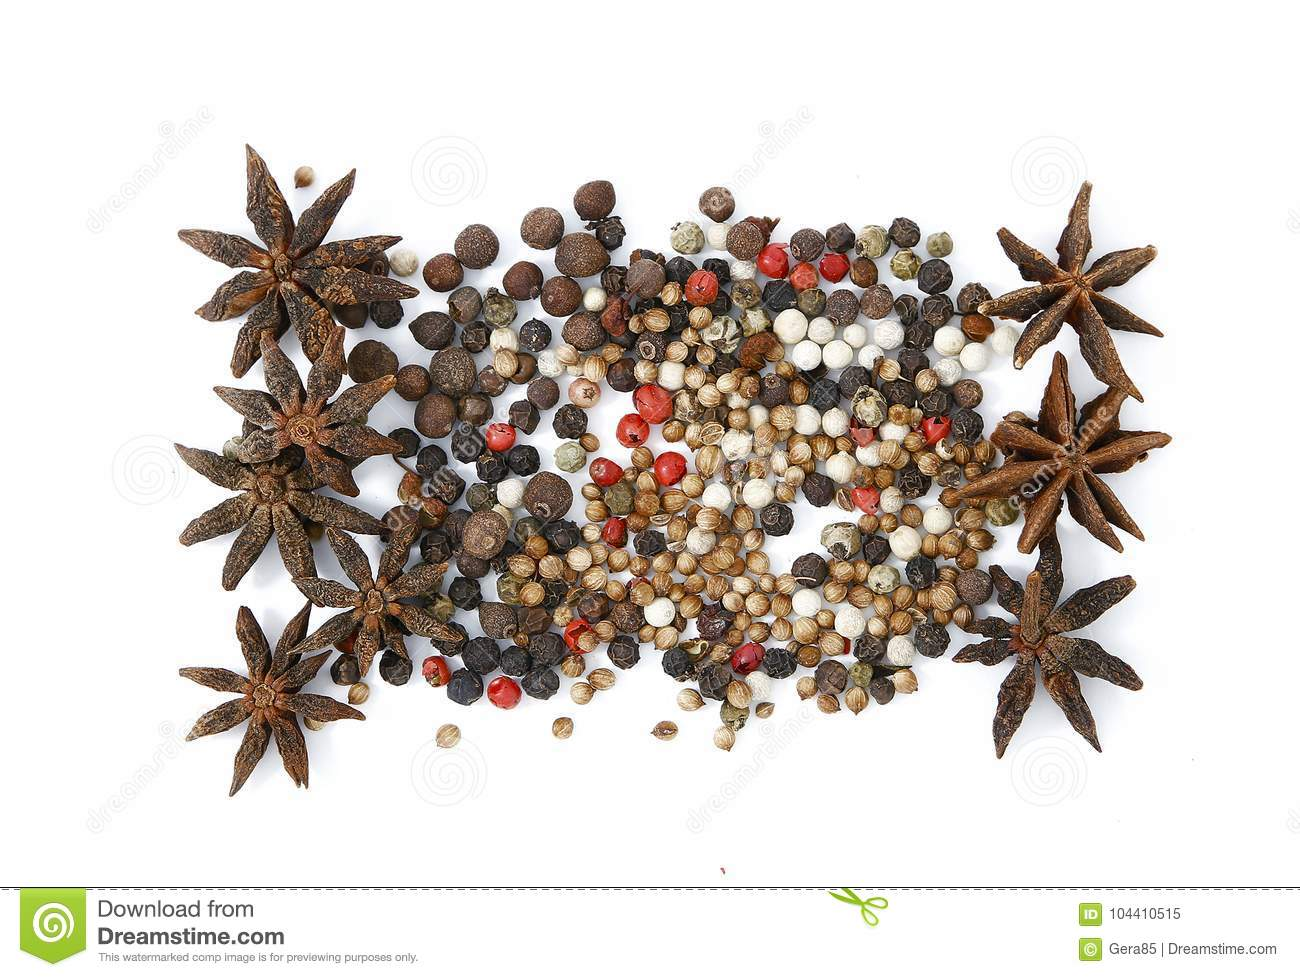 Eastern Spices And Condiments Photo For Micro-stock Stock Image